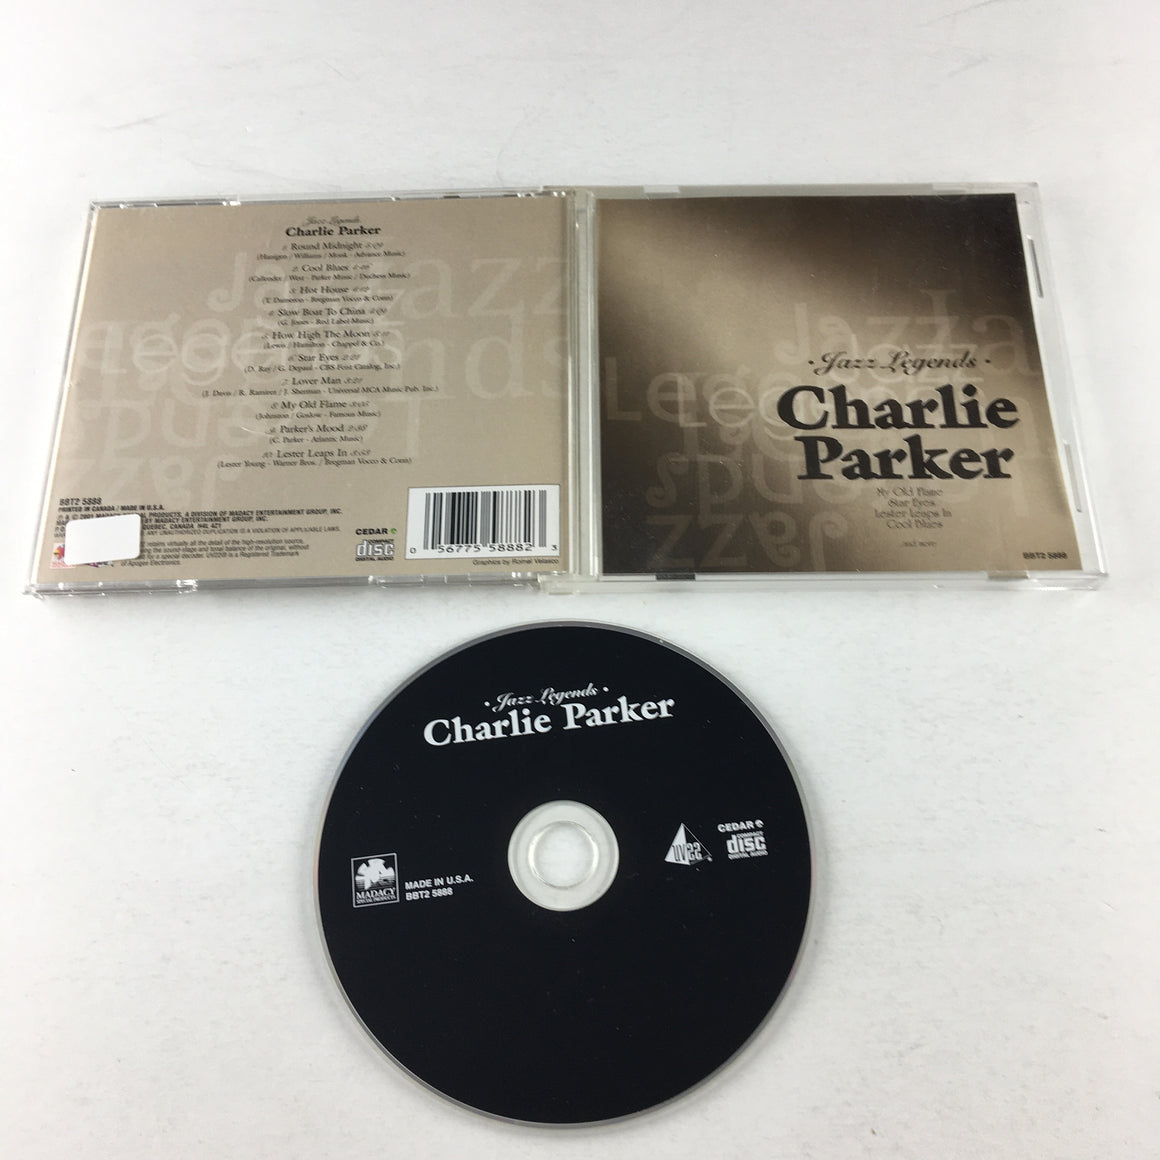 Jazz Legends Charlie Parker VG+ CD Sealed BBT2 5888